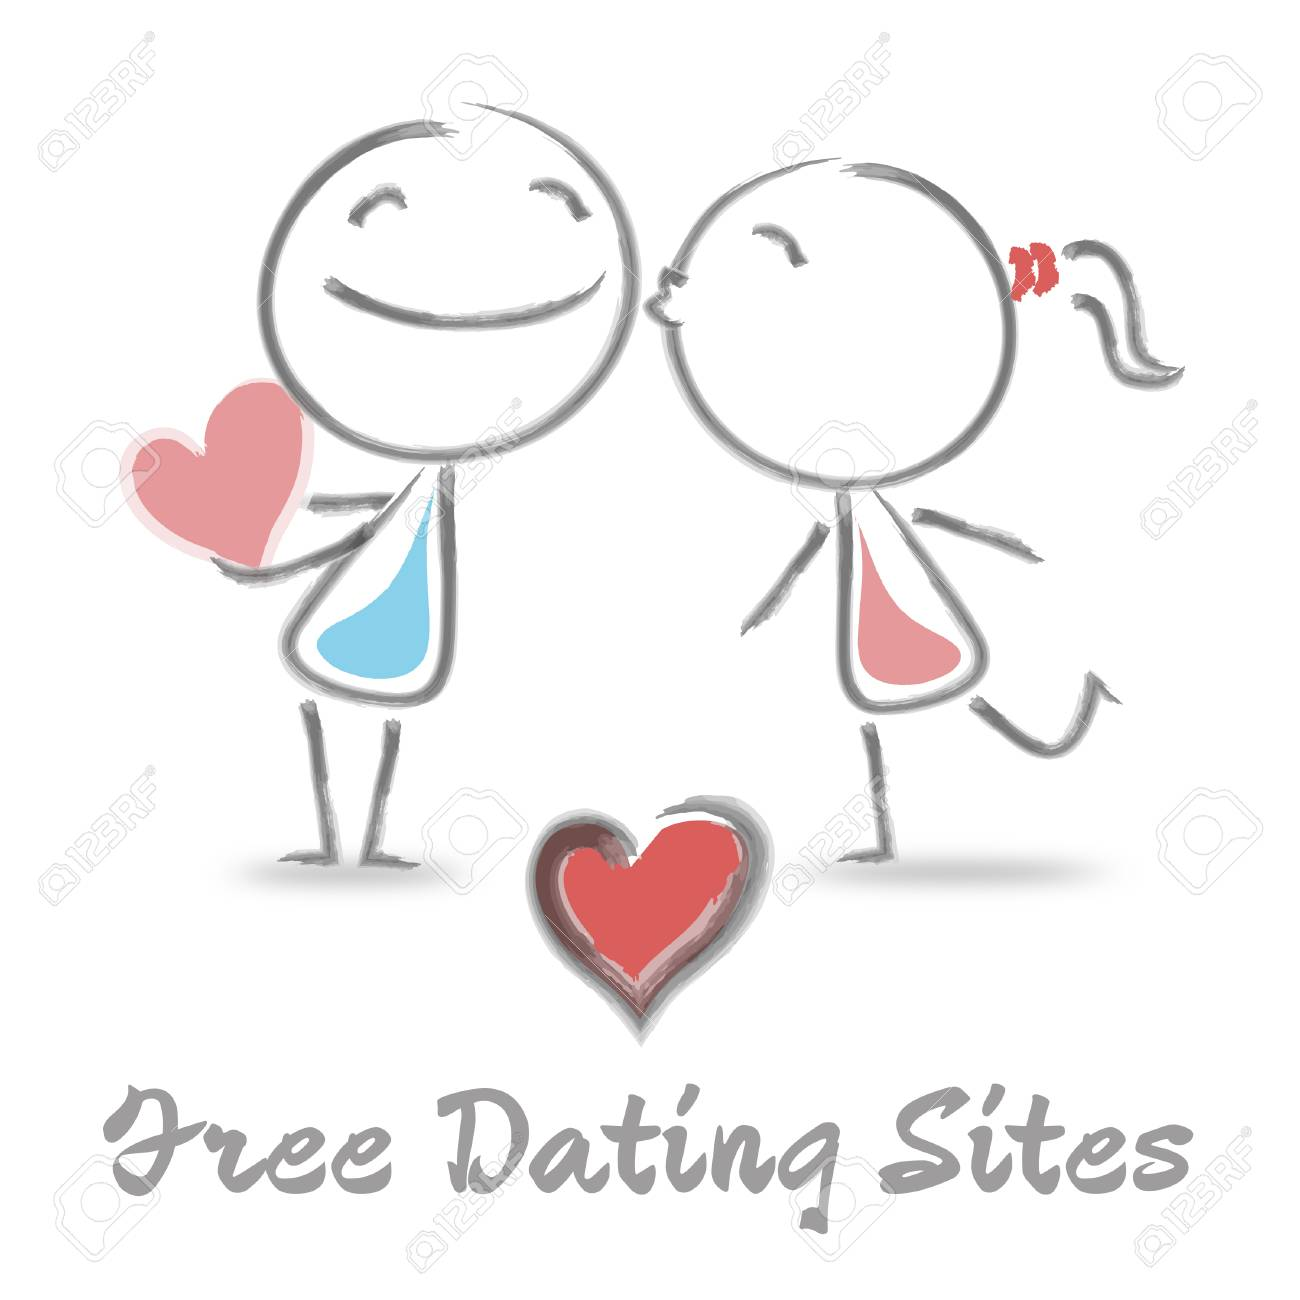 dating sites on internet